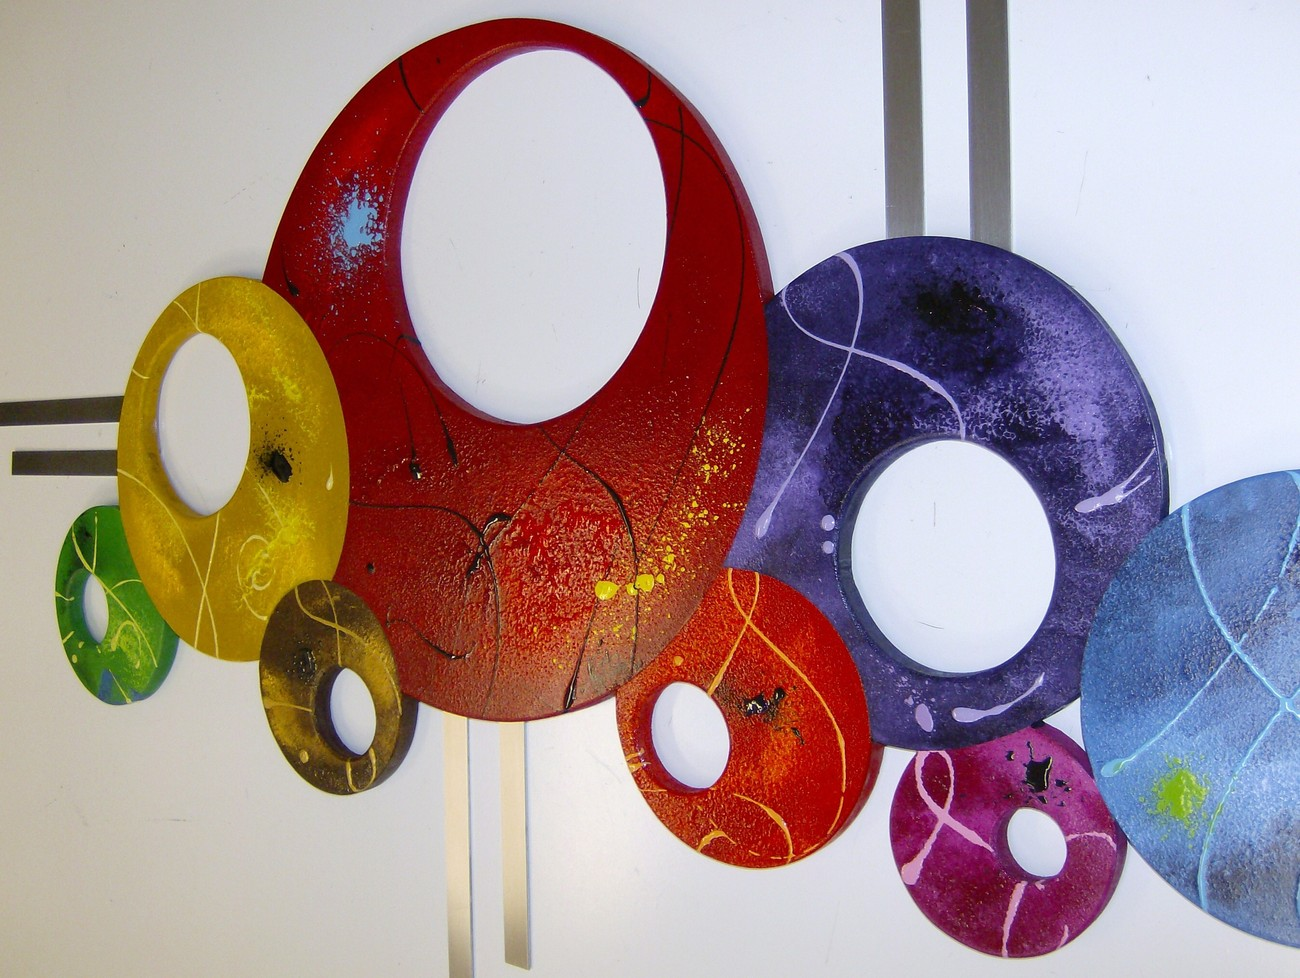 "Colorful Contemporary Modern Abstract Circle Wall Sculpture sizw 48x25 ""Bubbly#3"